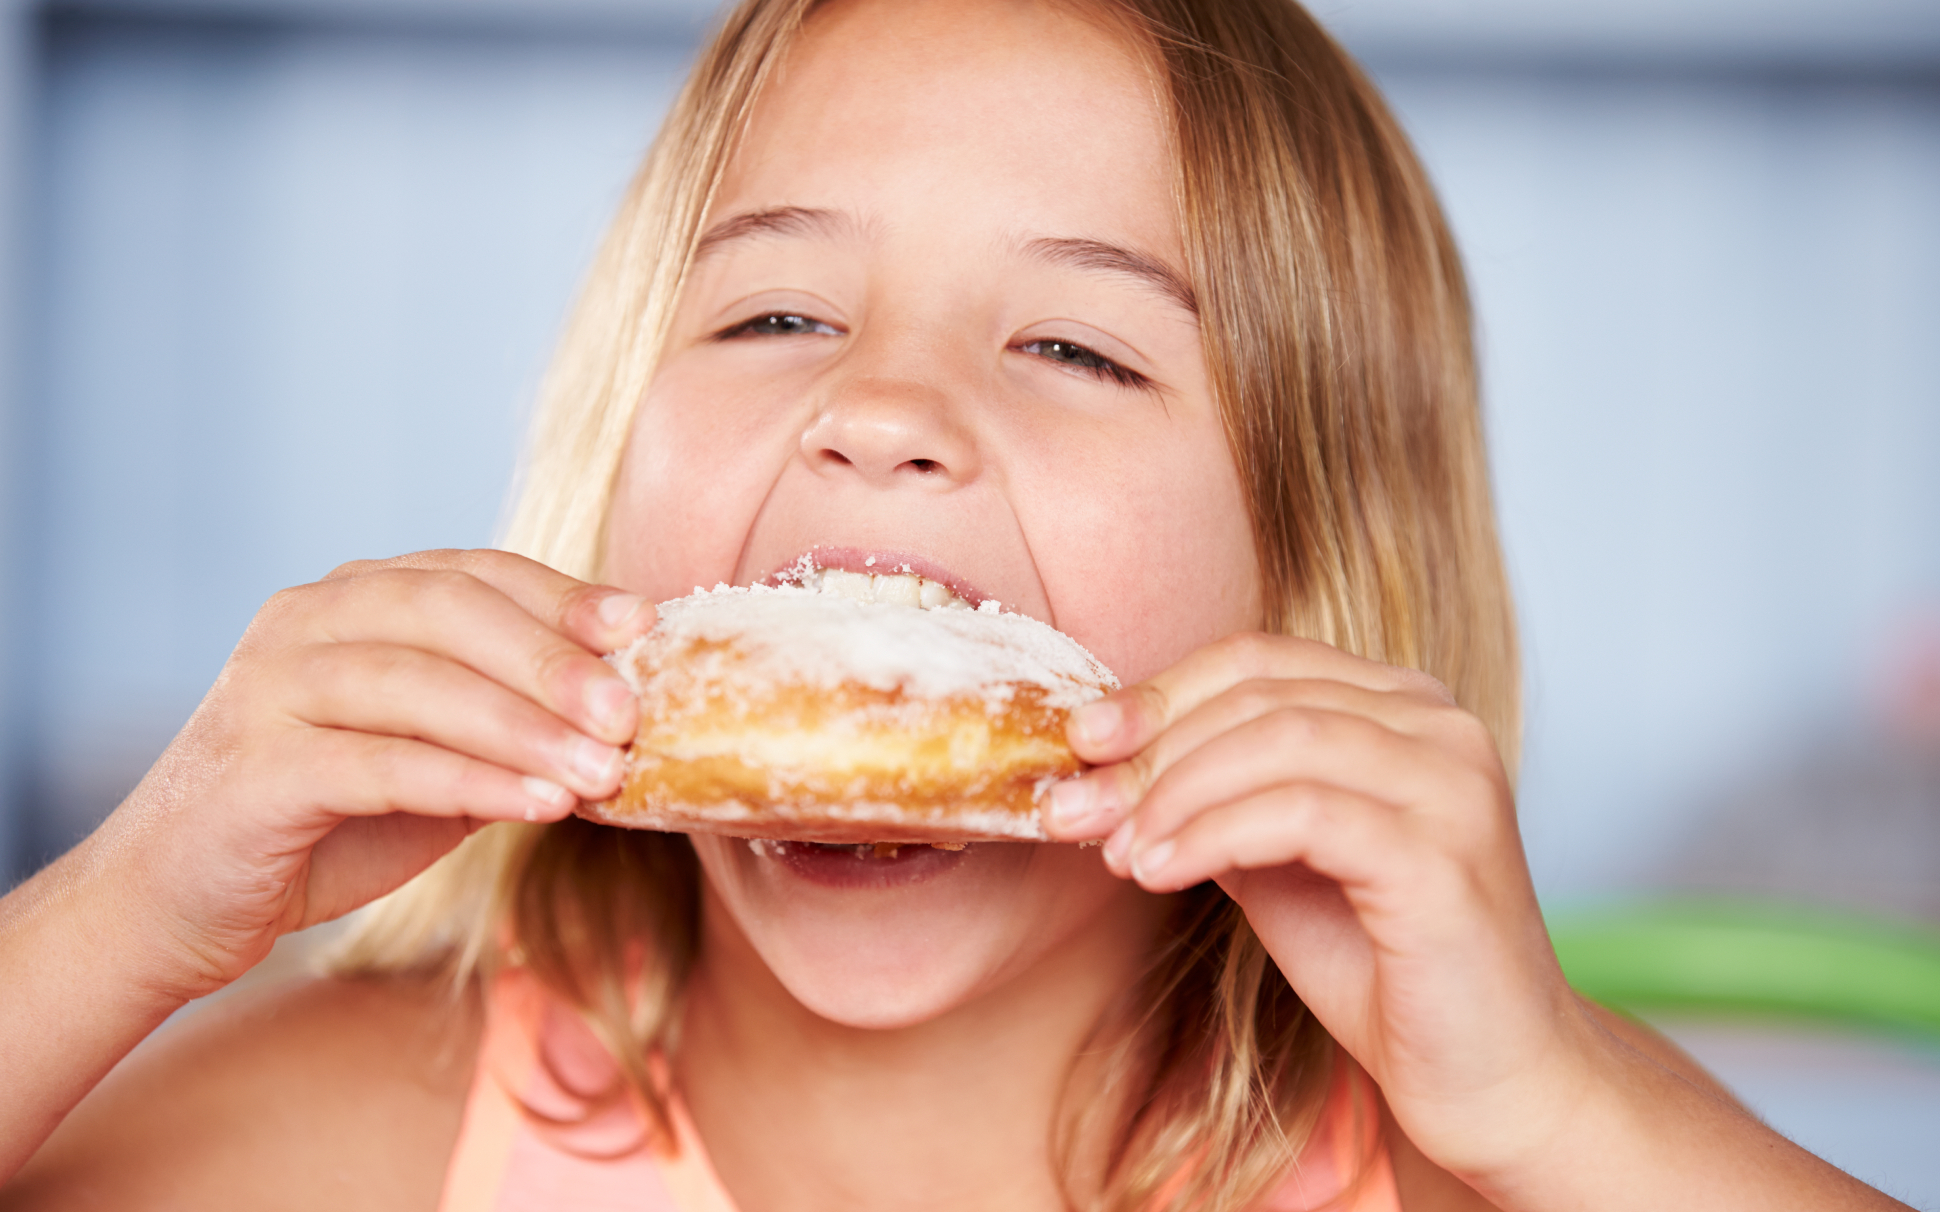 child eating doughnut: daily sugar allowance